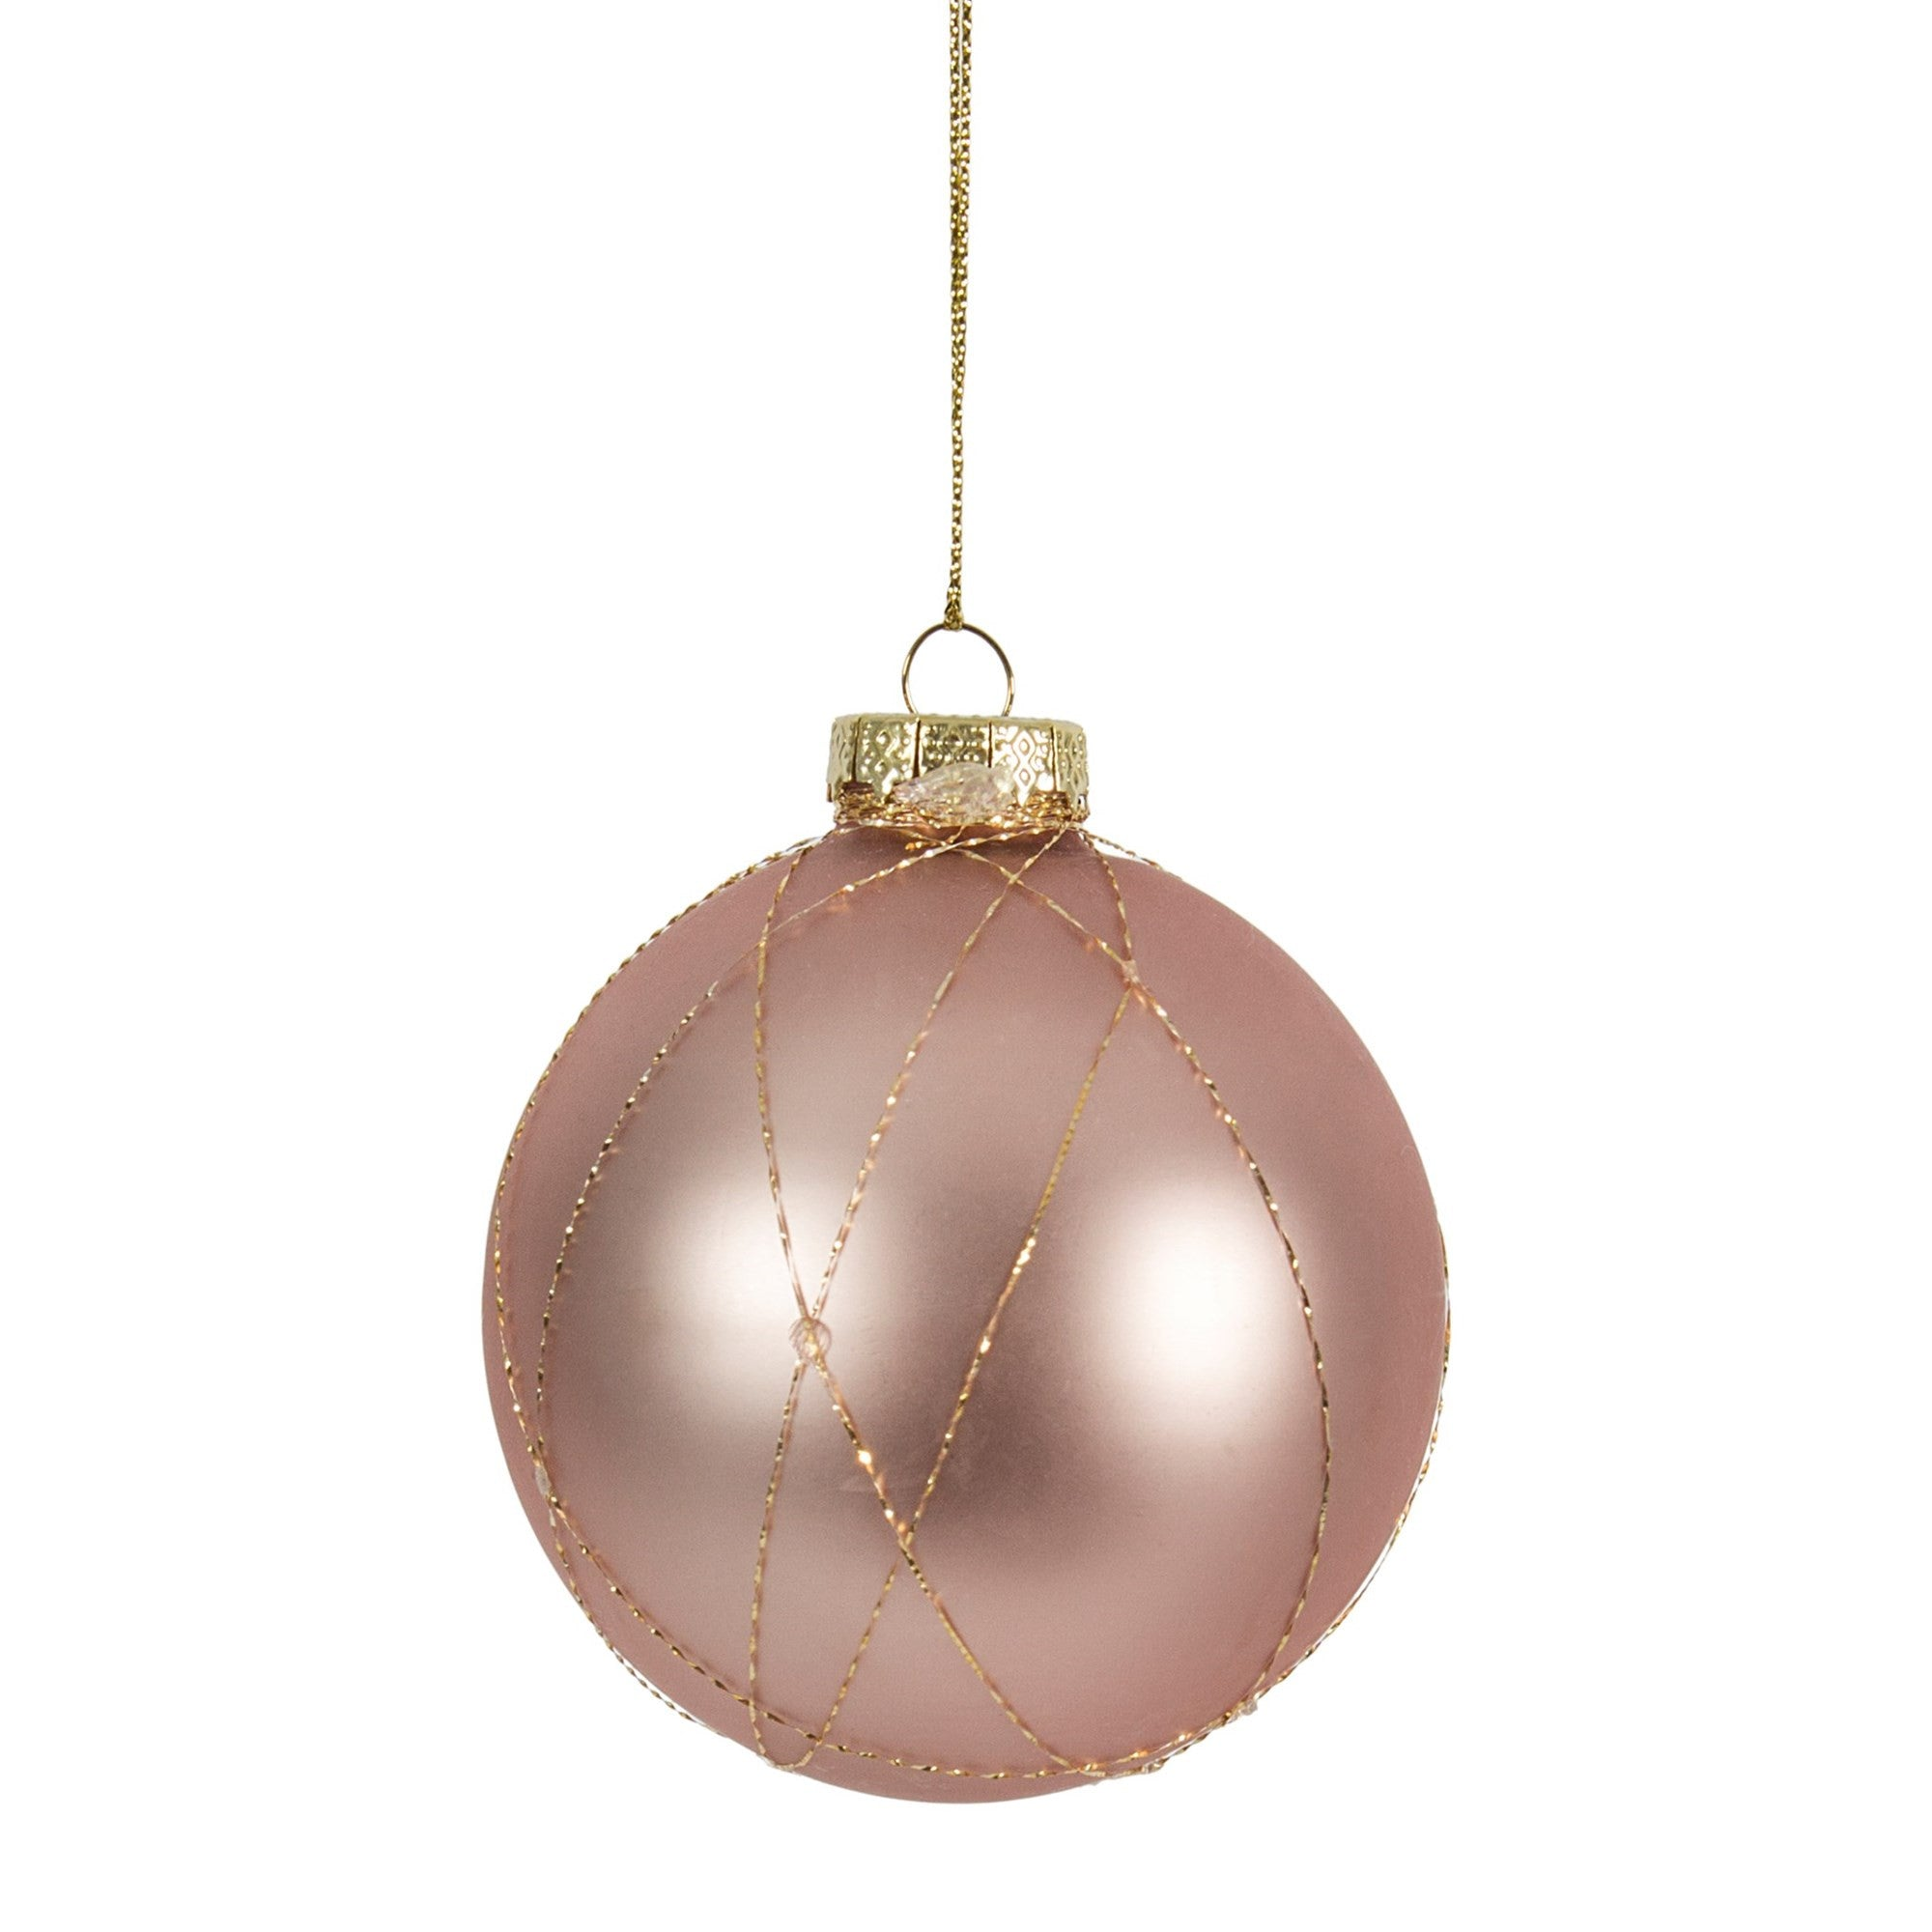 Blush Pink Glass Ornament with Gold Bouillon, CF-Canfloyd, Putti Fine Furnishings